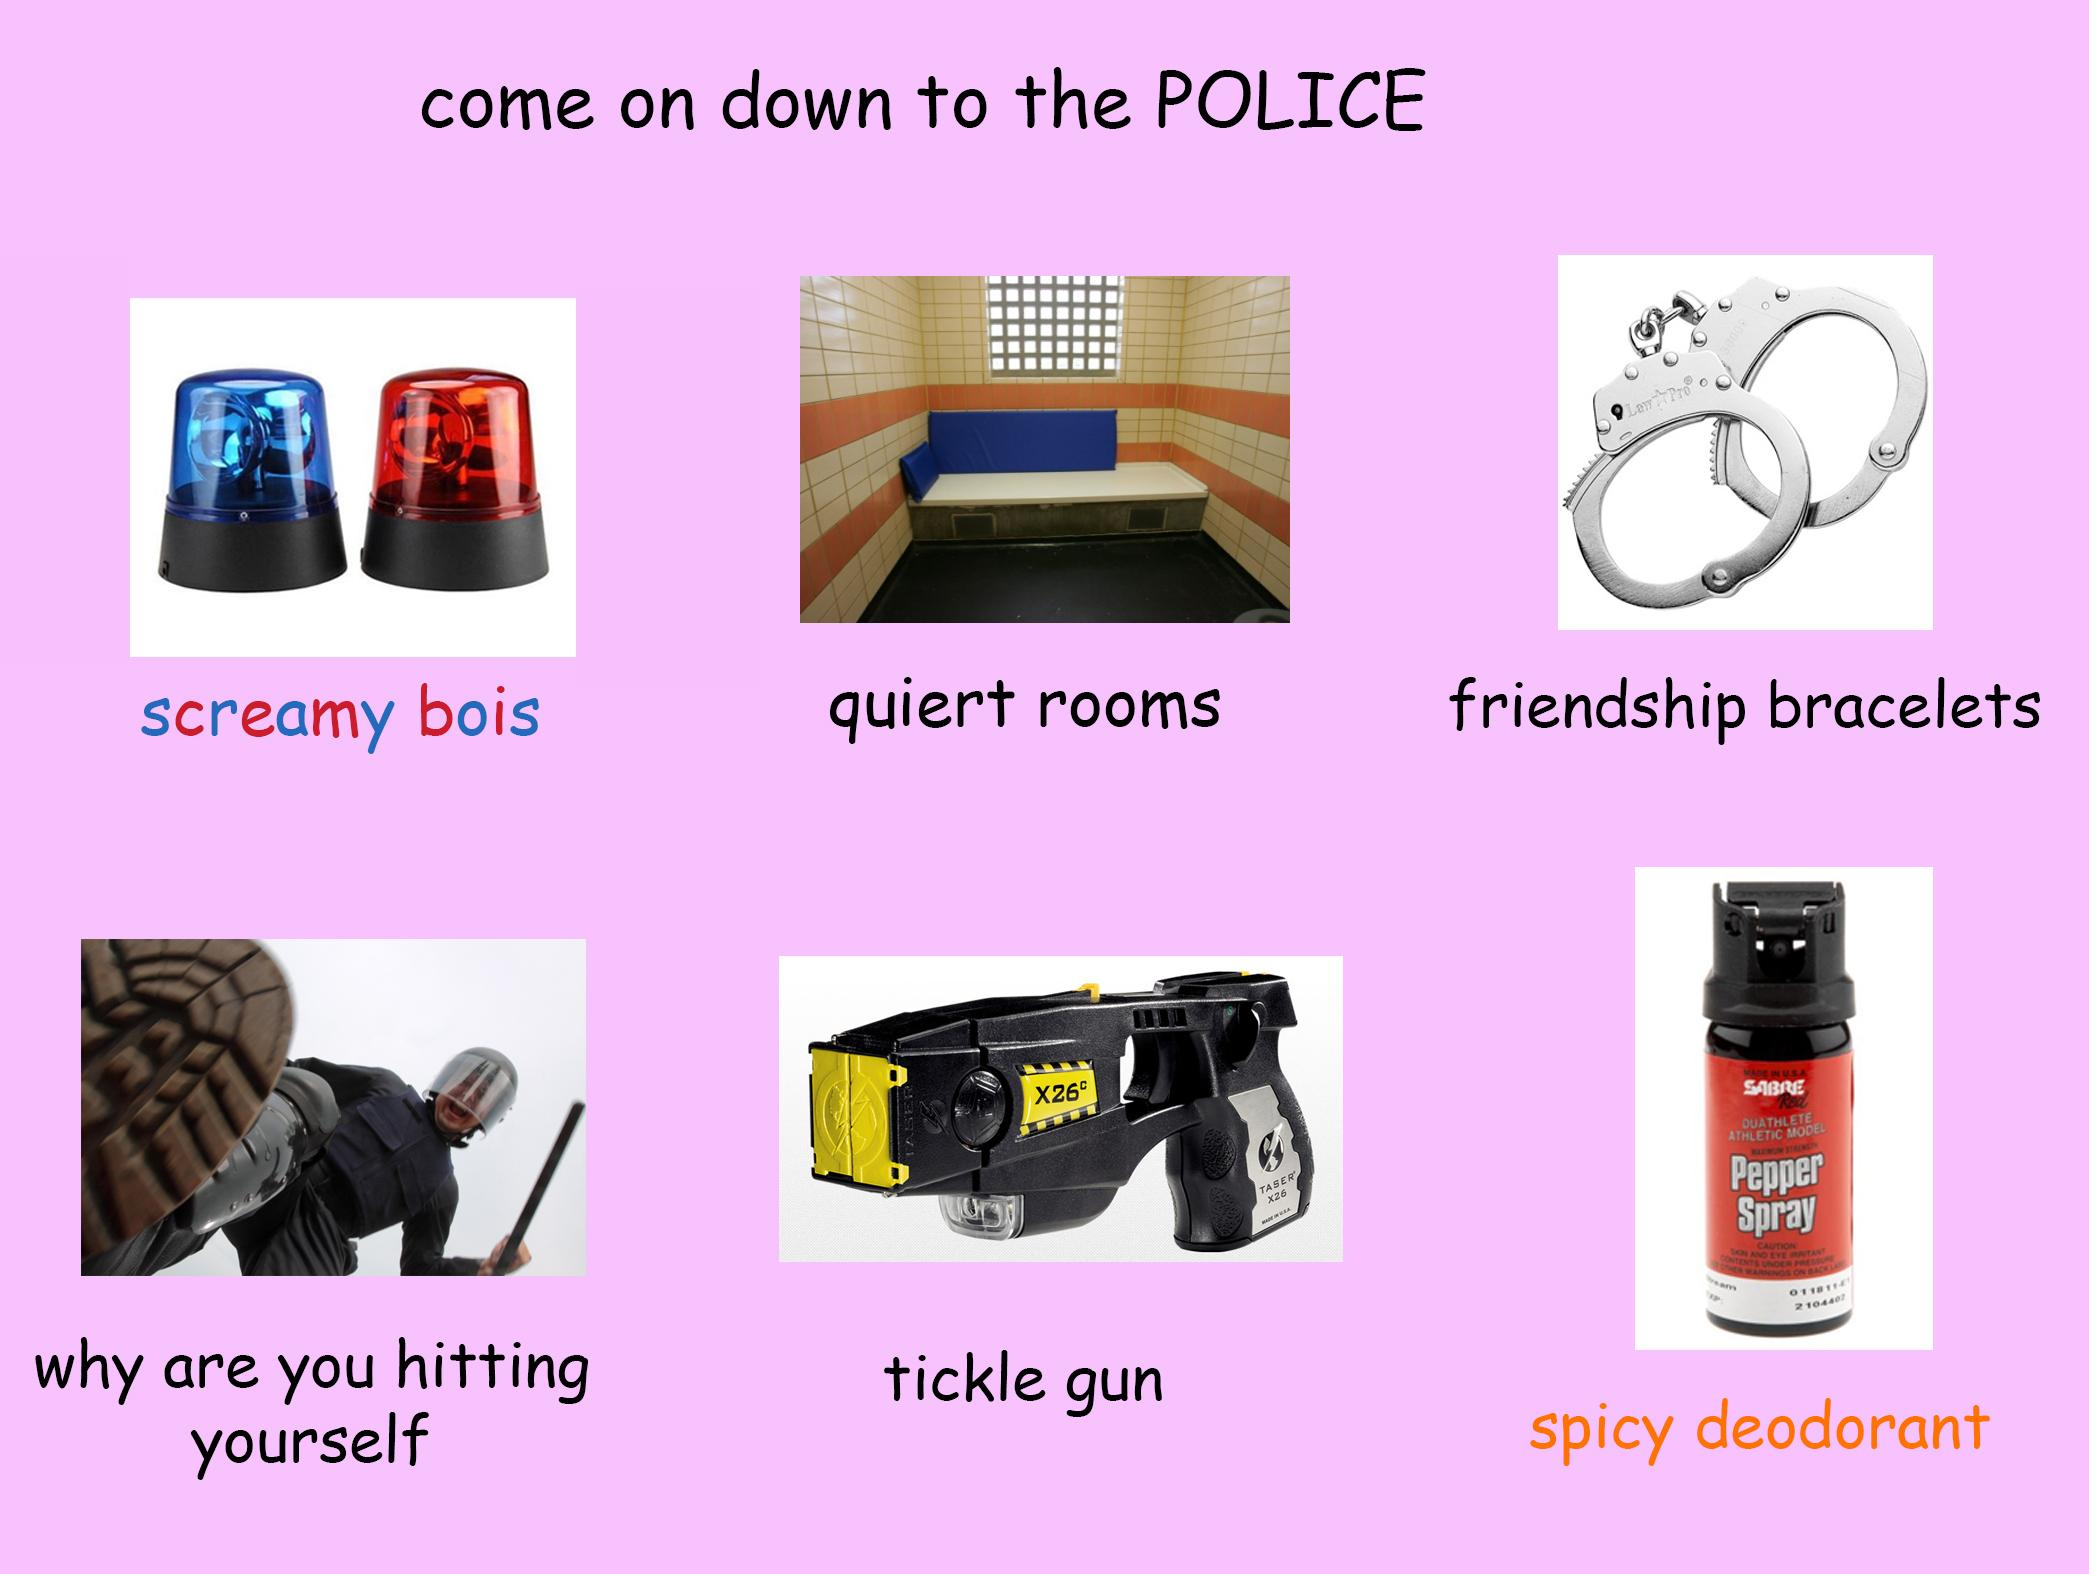 98b come on down to the police \